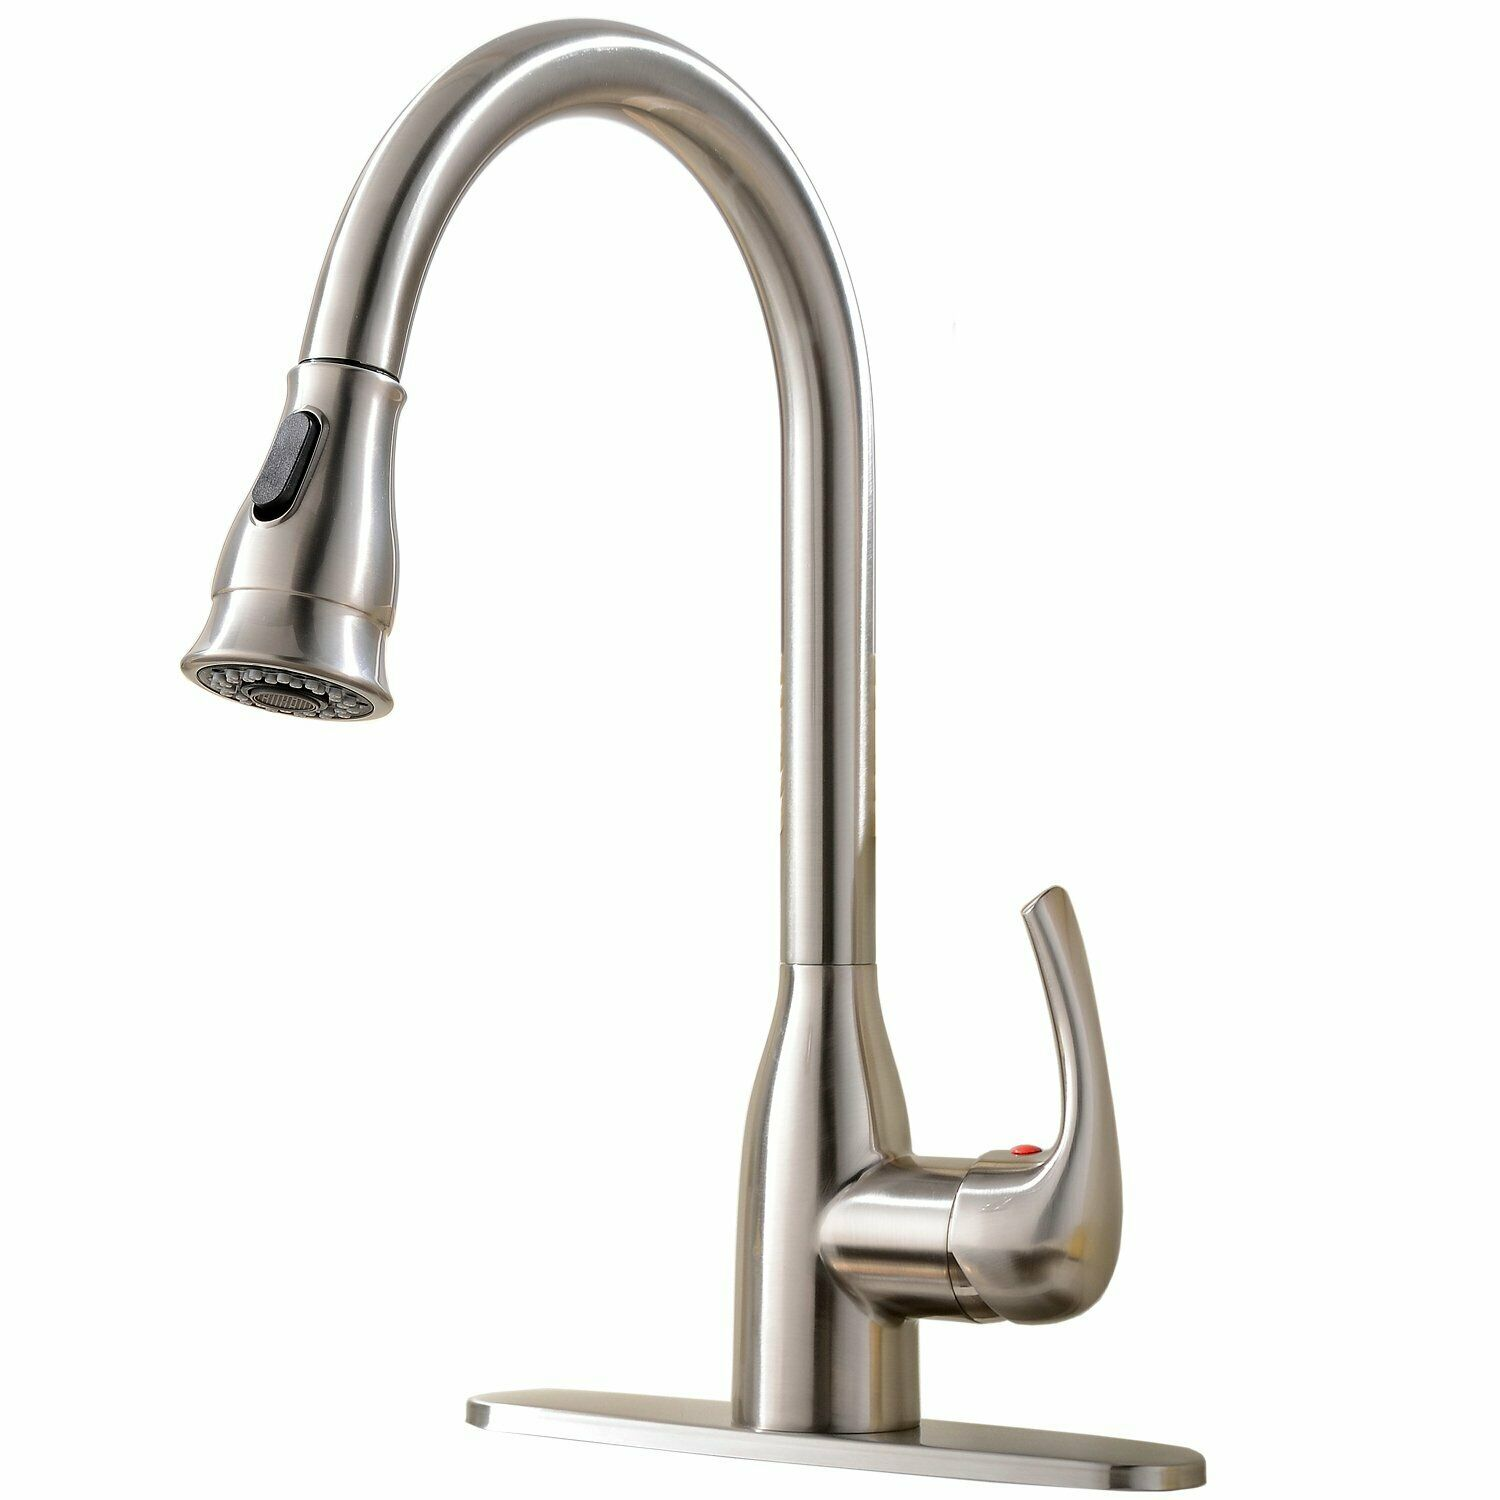 Commercial Kitchen Sink Faucet Single Handle Stainless Steel Pull Down  Sprayer